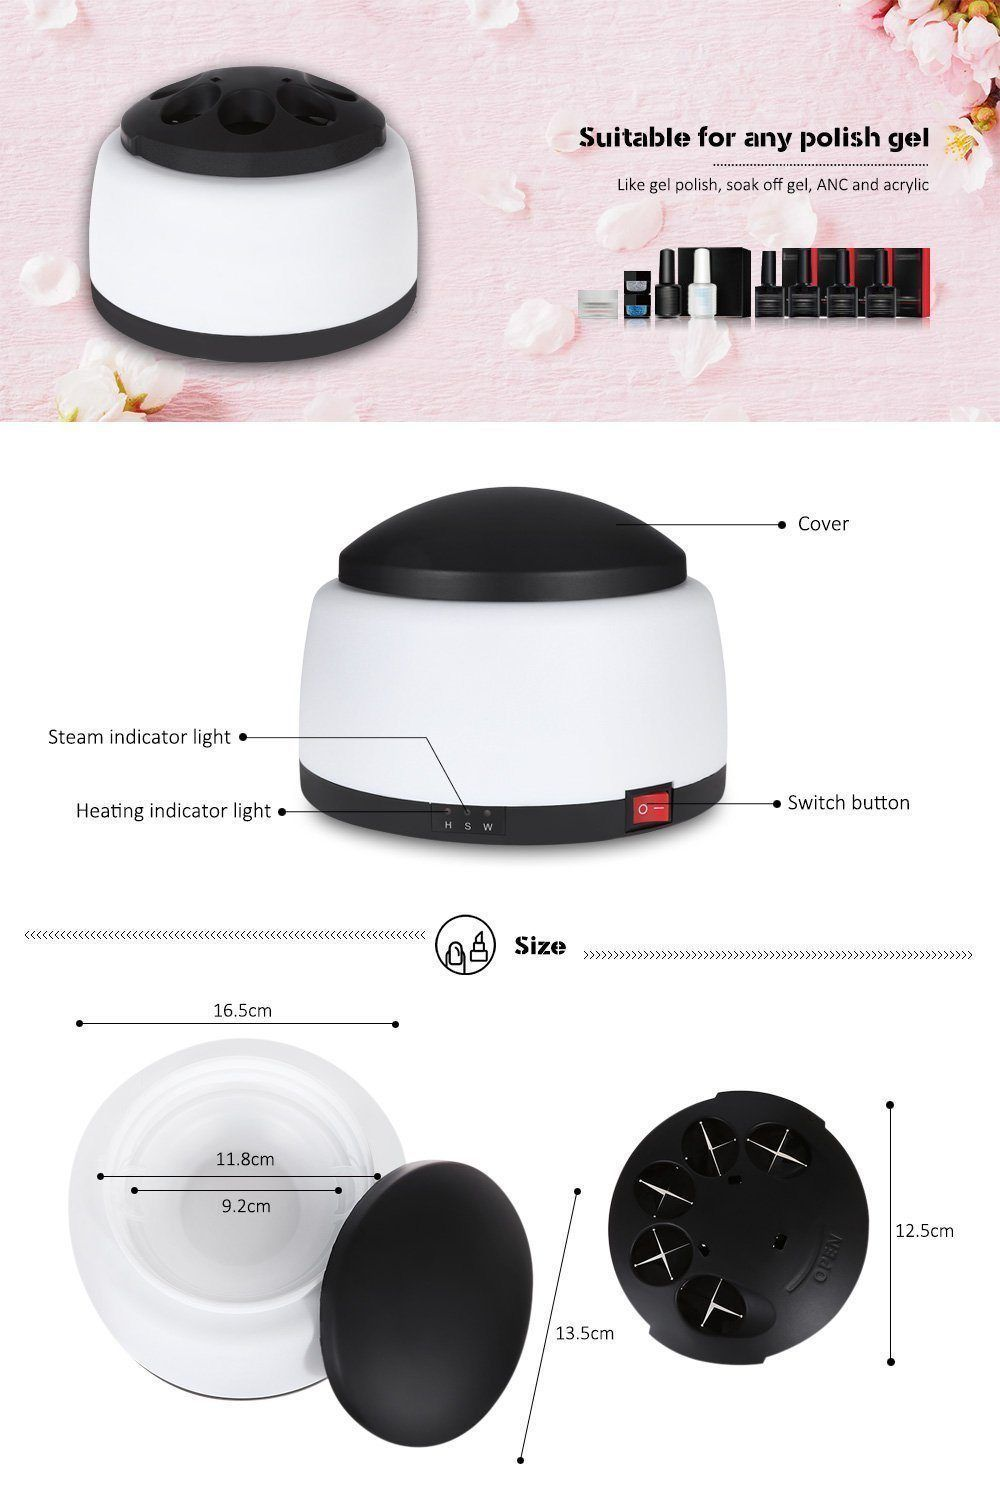 Electric Polish Nail Steamer